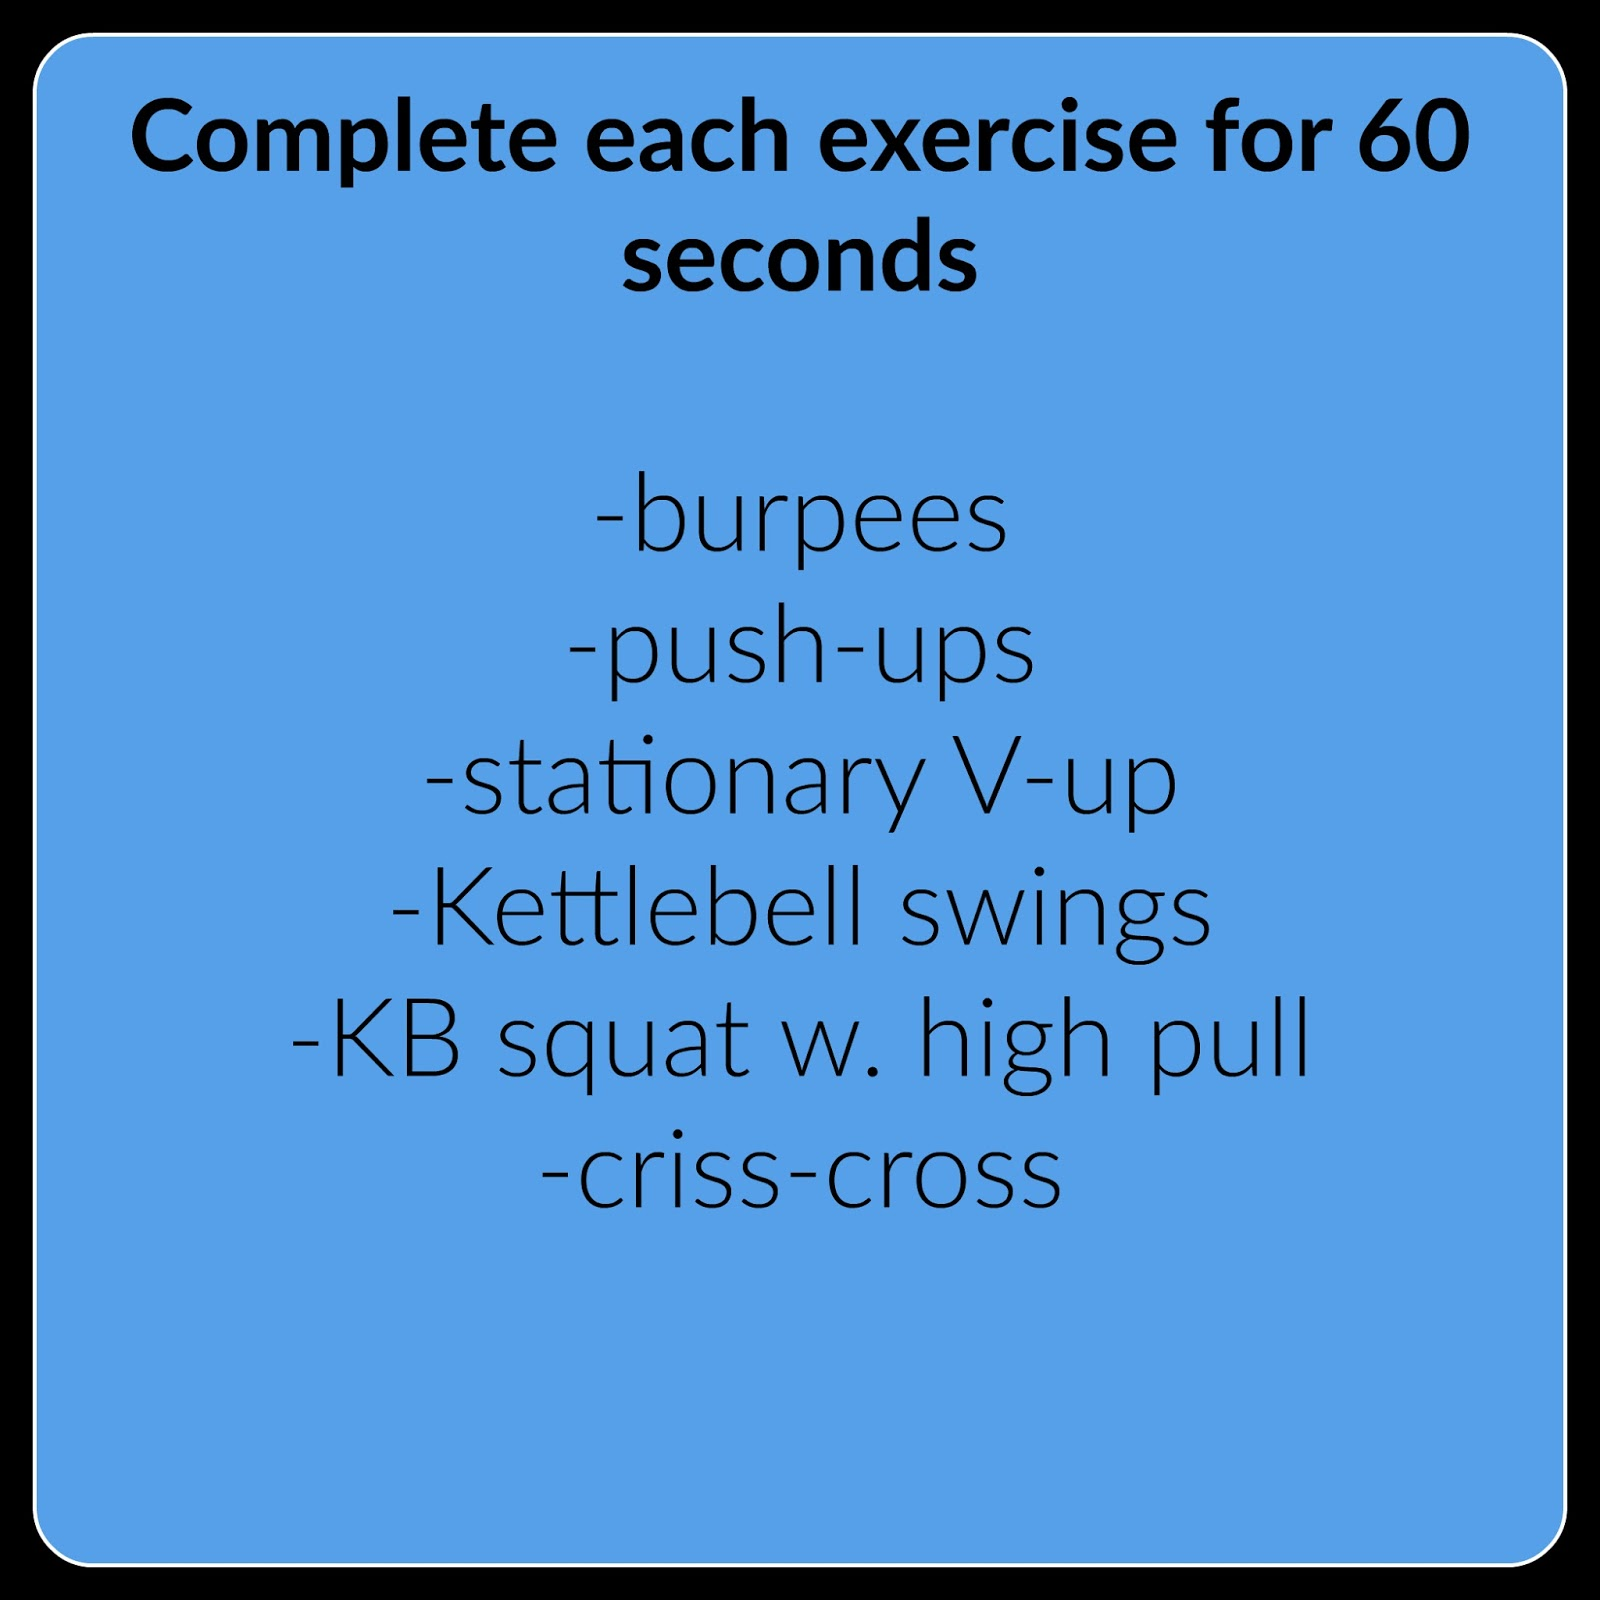 Hit The Ground Running April 2017 January Indoor Workout Full Body Circuit Timed Tuesday Pain In My Calves Has Been Completely Dormant Because I Havent But Monday Night Slept Terribly Was Back